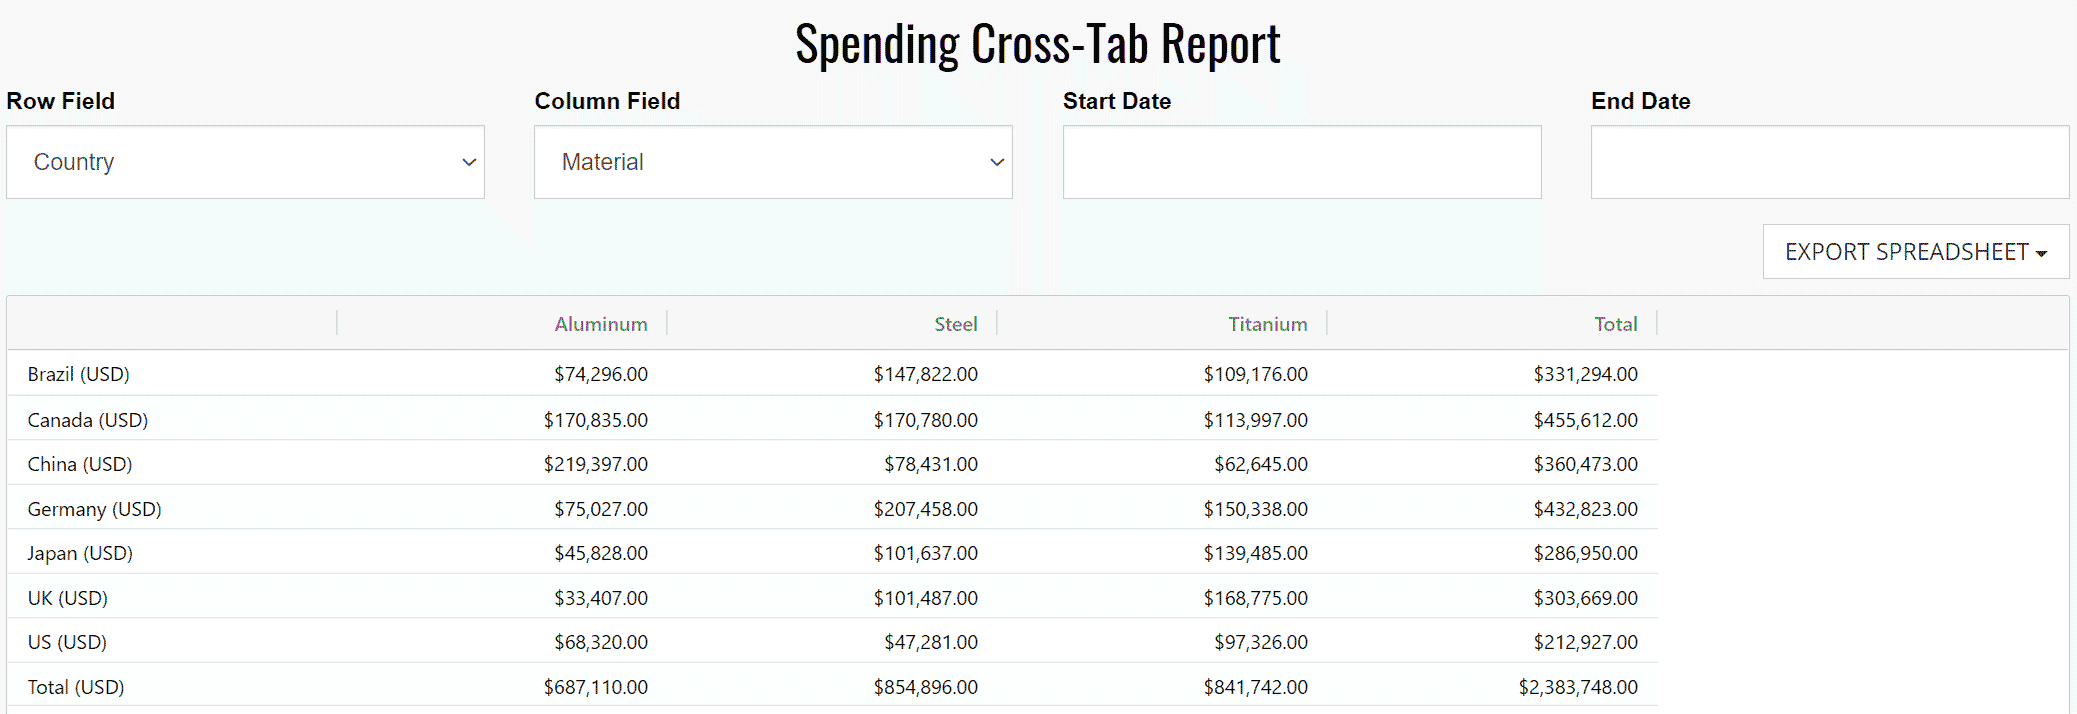 Spending Cross-Tab Report